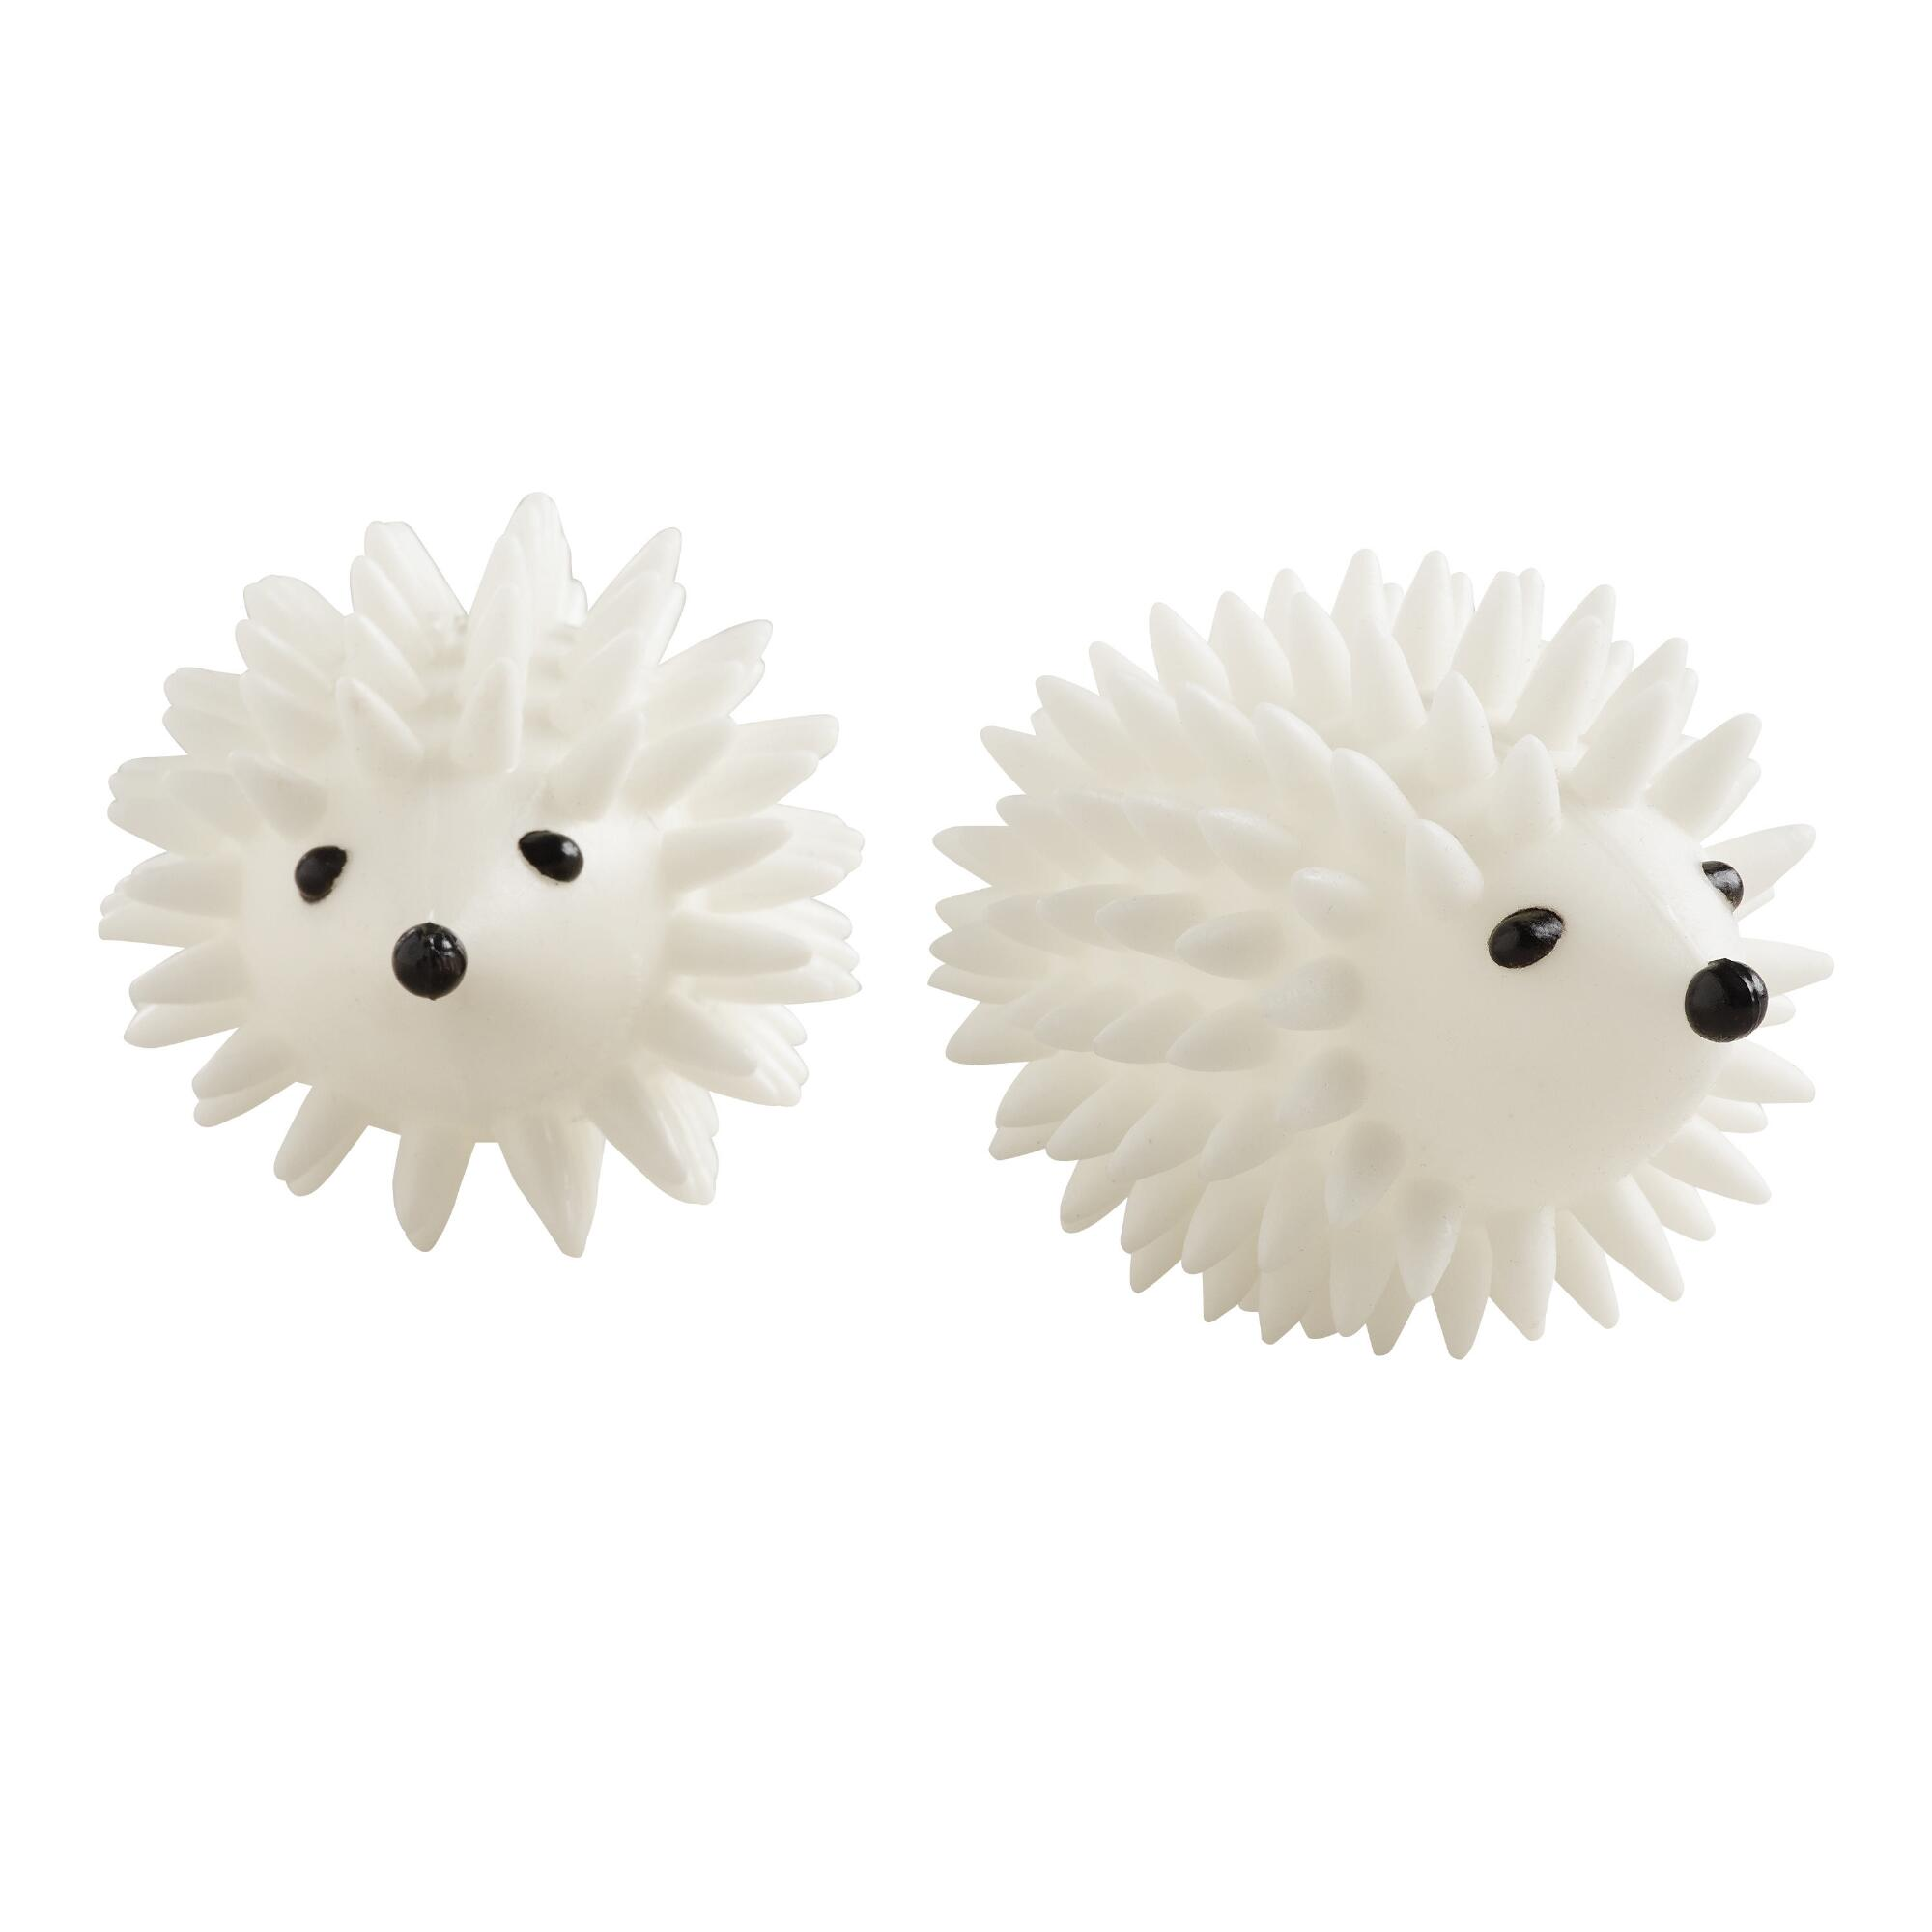 Hedgehog Dryer Balls, 2-Pack: White by World Market